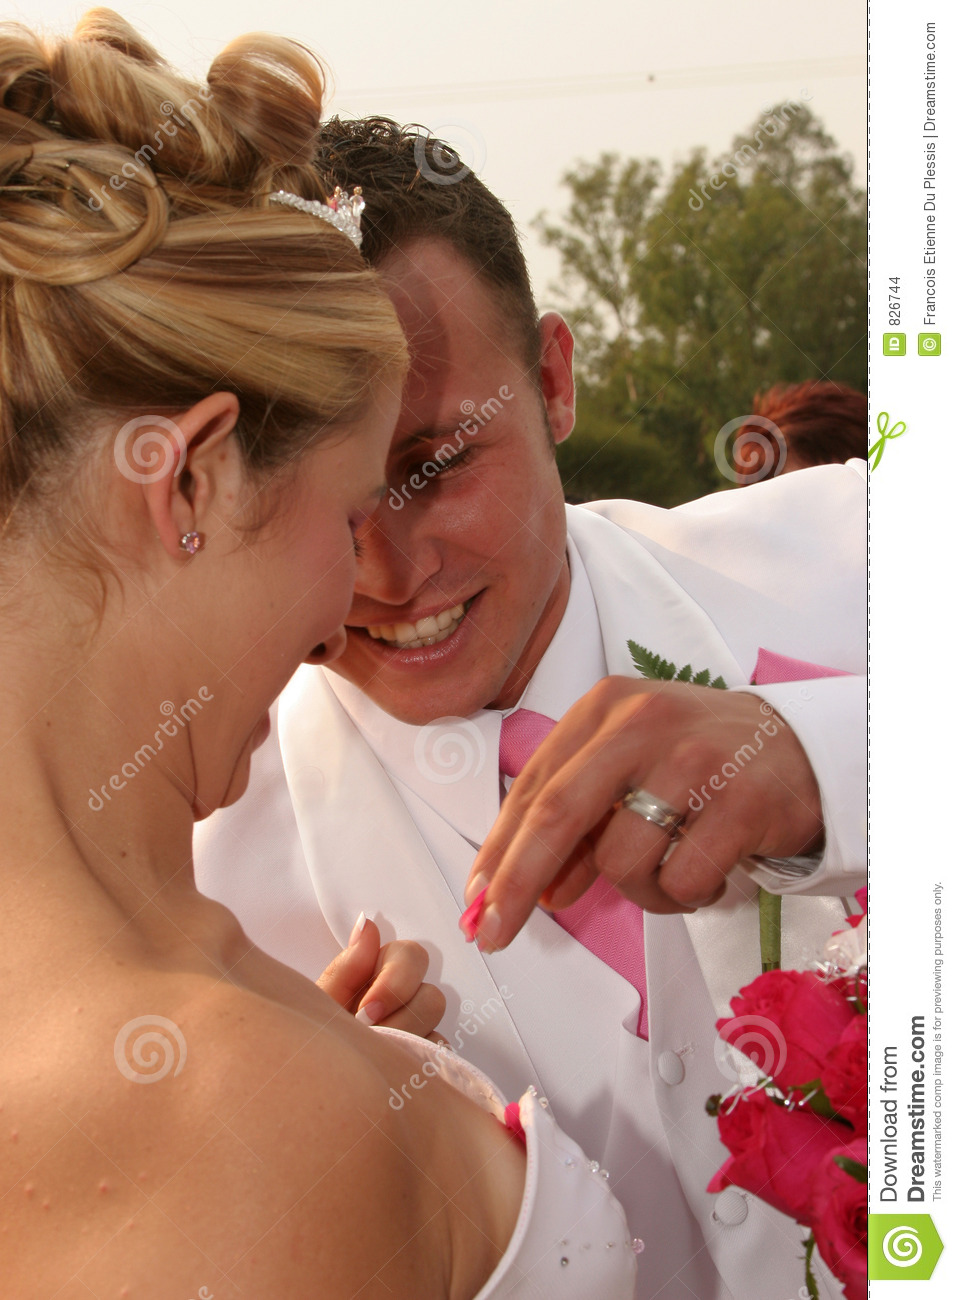 Groom taking out some roses